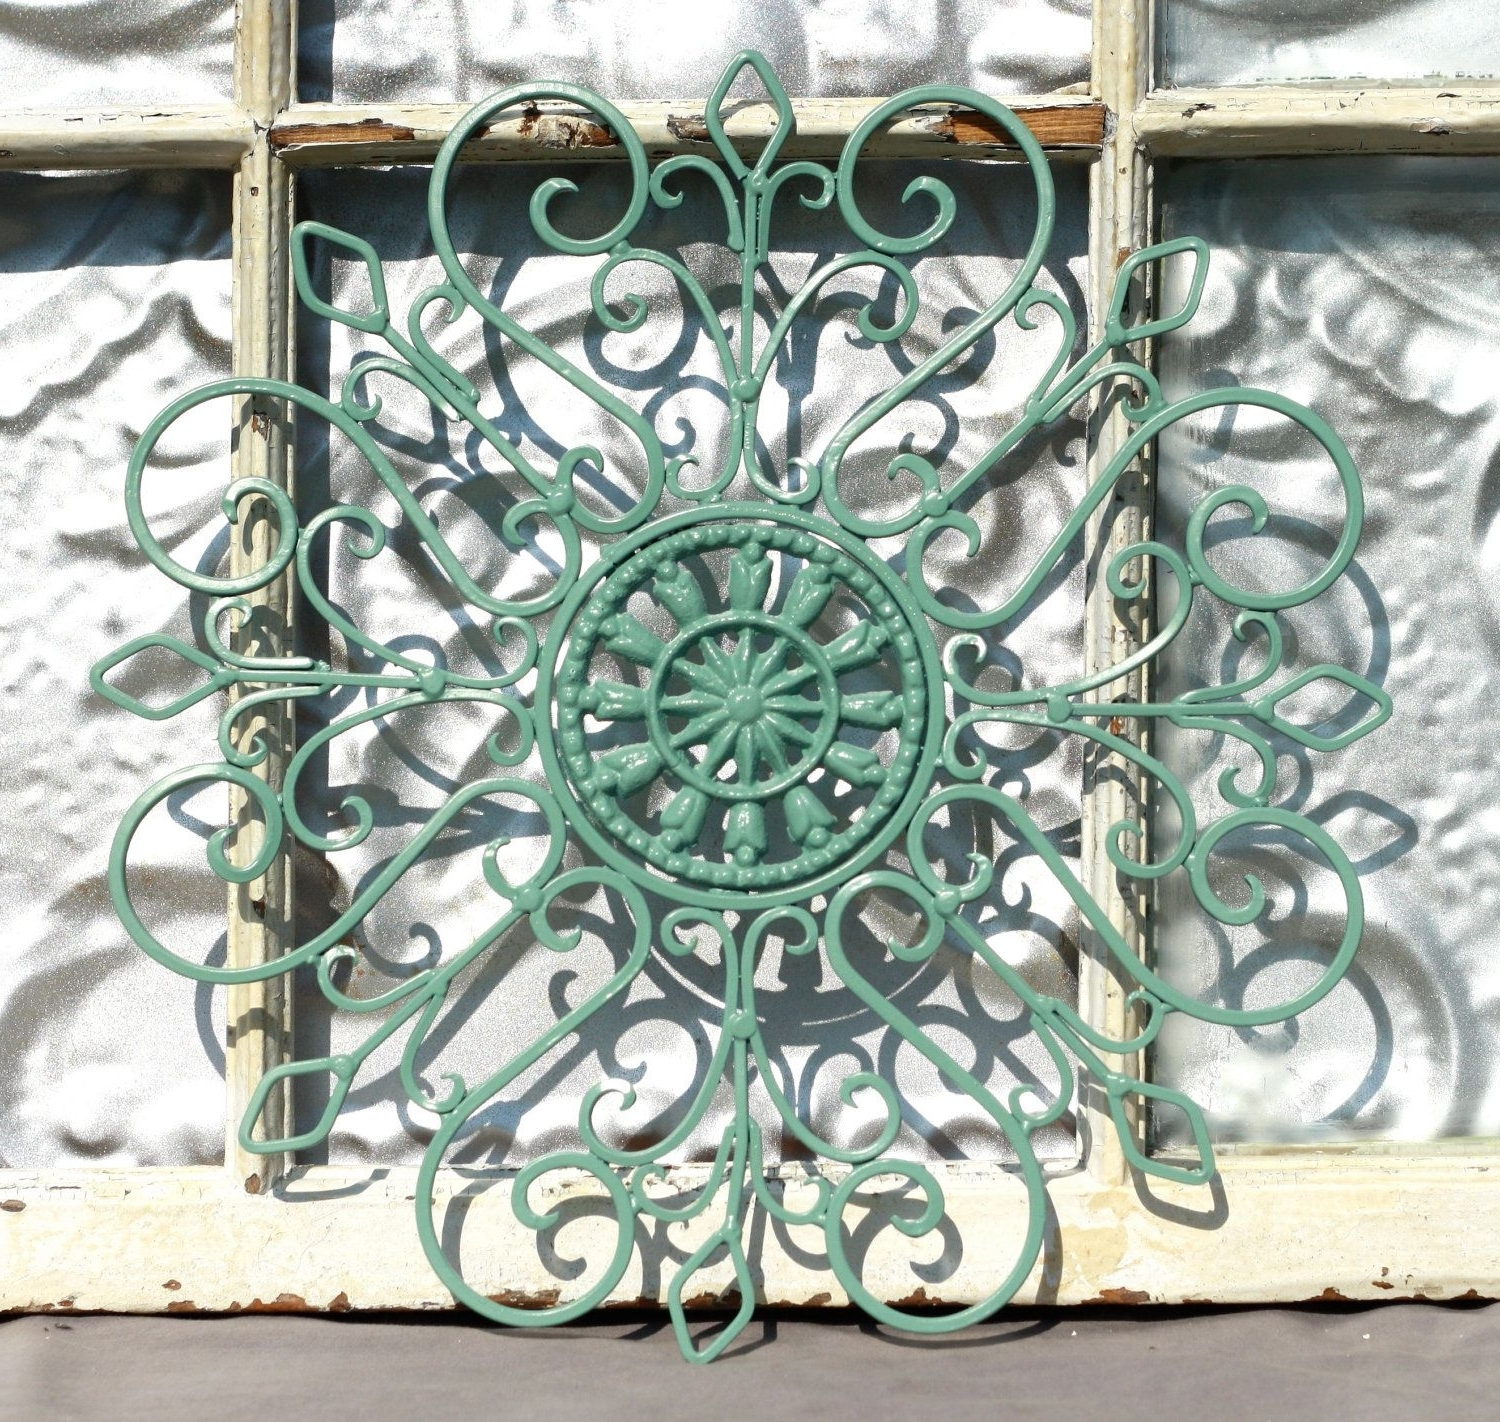 Preferred Faux Wrought Iron Wall Decors With Regard To Wrought Iron Wall Decor/ Metal Wall Hanging/ Indoor/ Outdoor Metal (View 12 of 15)